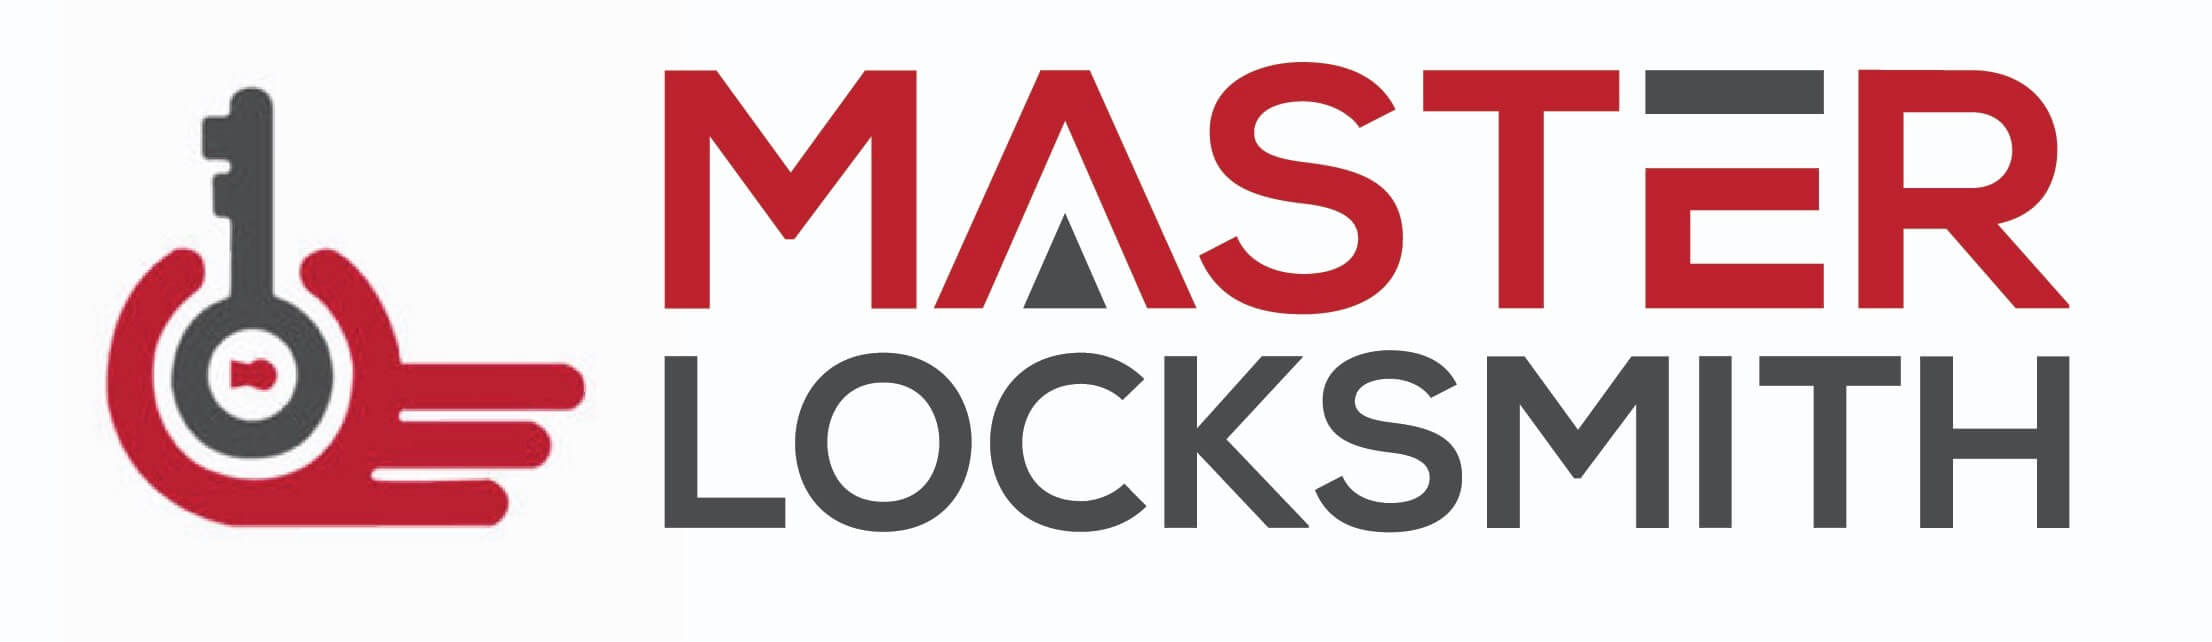 Master Locksmith - Emergency Locksmith Service